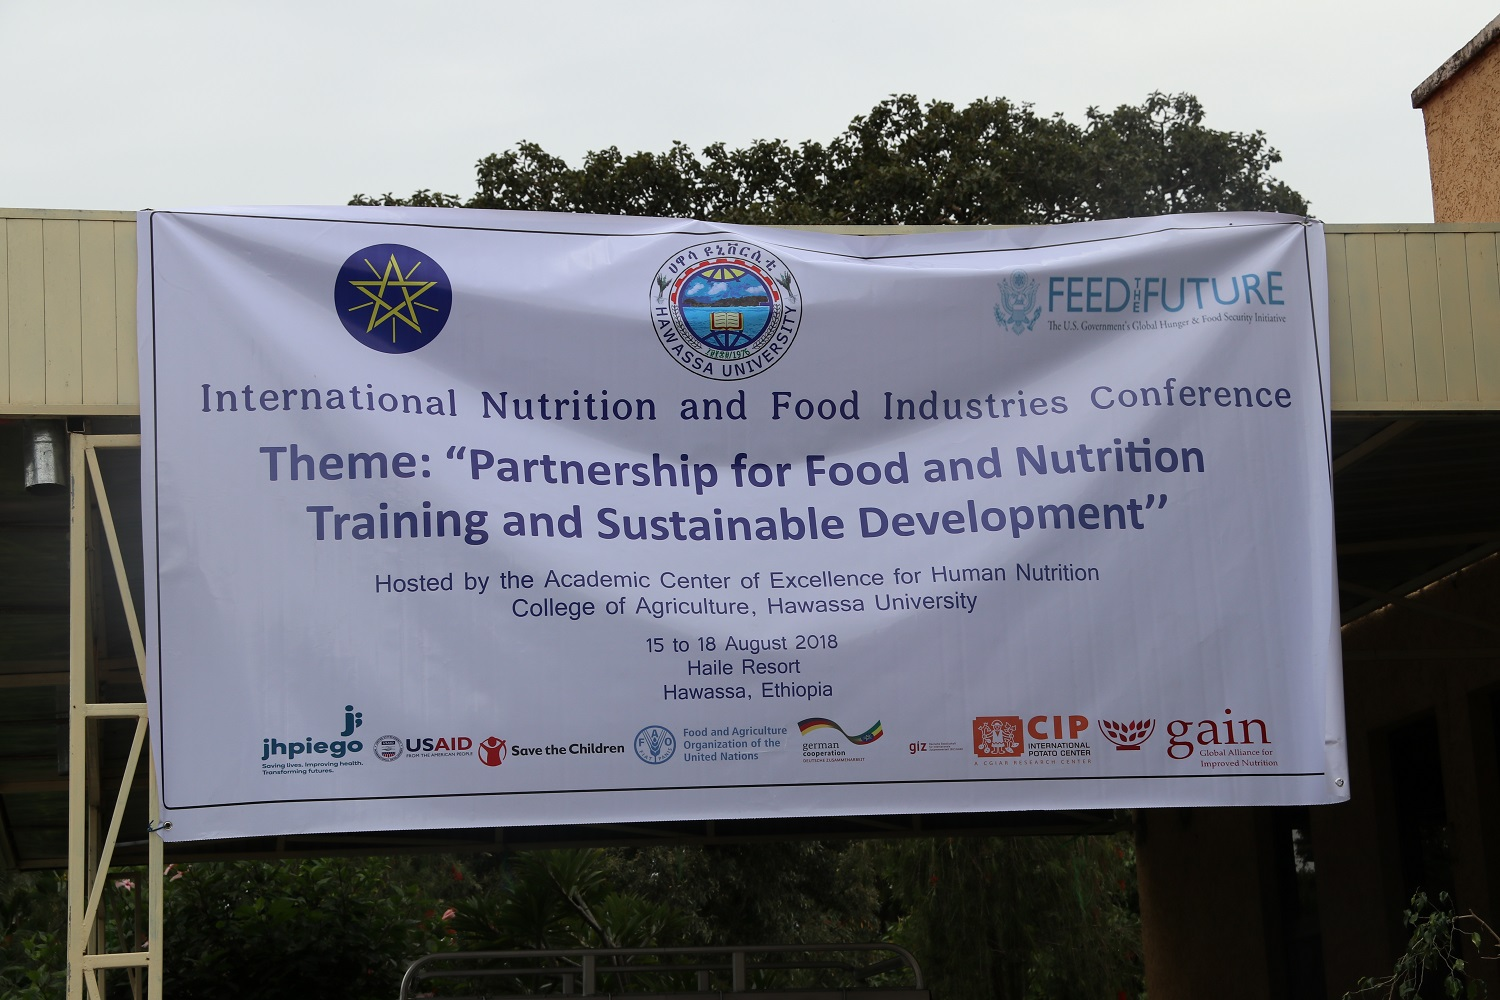 International Nutrition and Food Industries Conference in